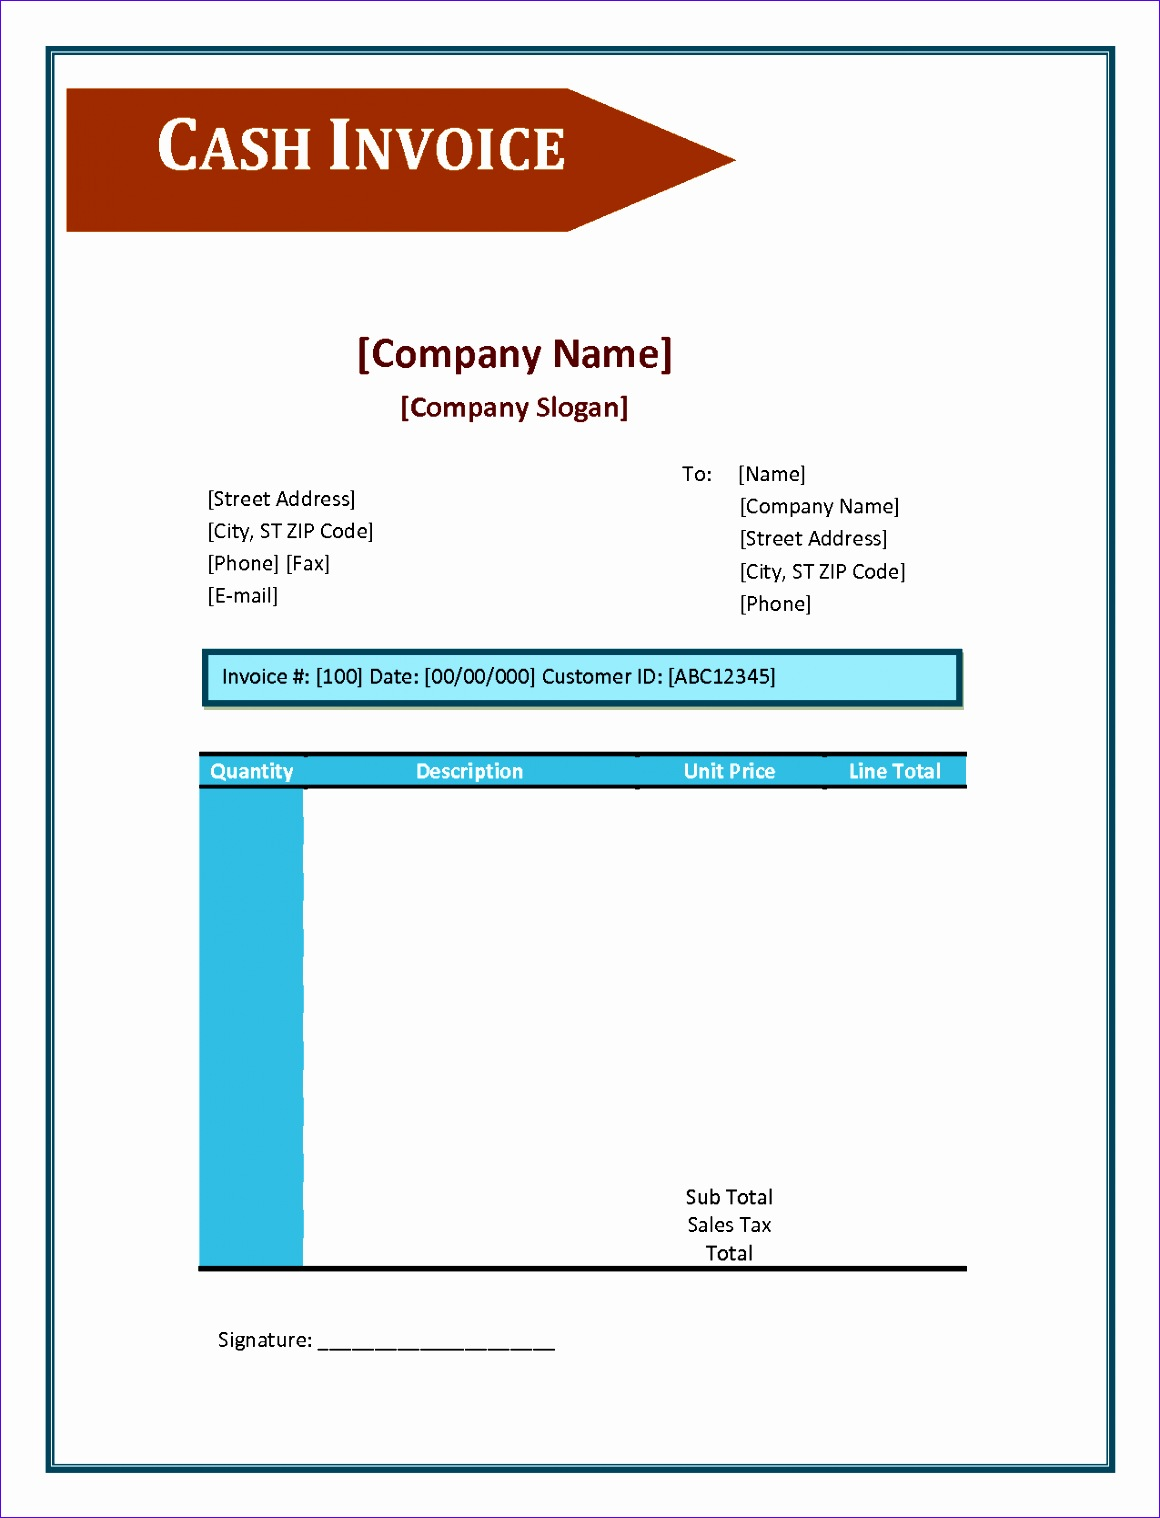 Cash Invoice Template Excel 1271  Invoice Template Download Excel